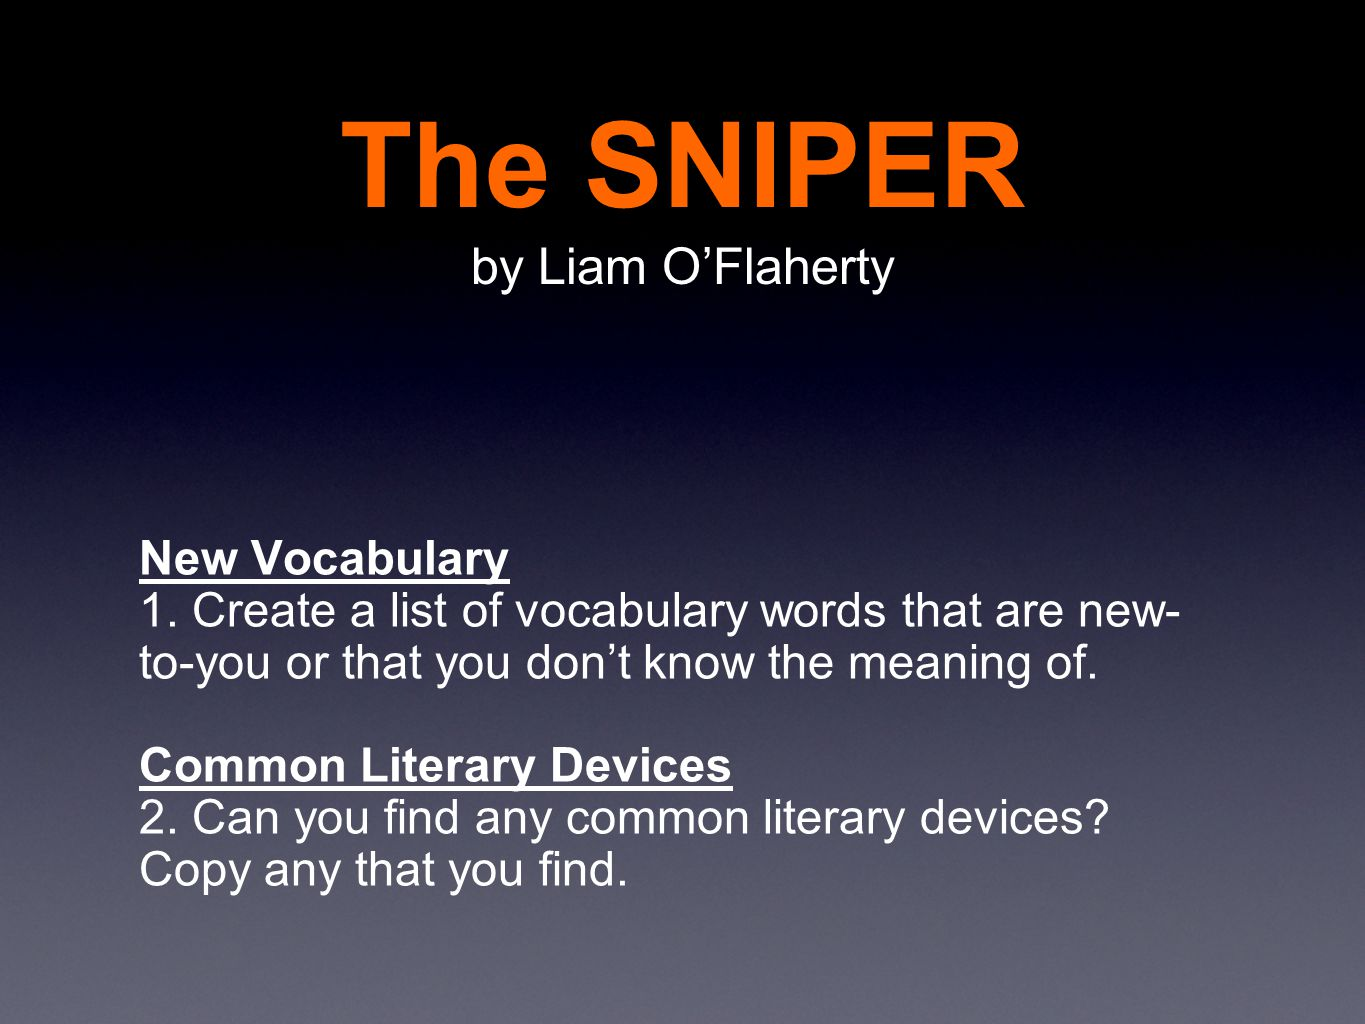 the sniper a short story analysis The sniper characters from litcharts analysis, and citation info the republican sniper begins the story concerned only.